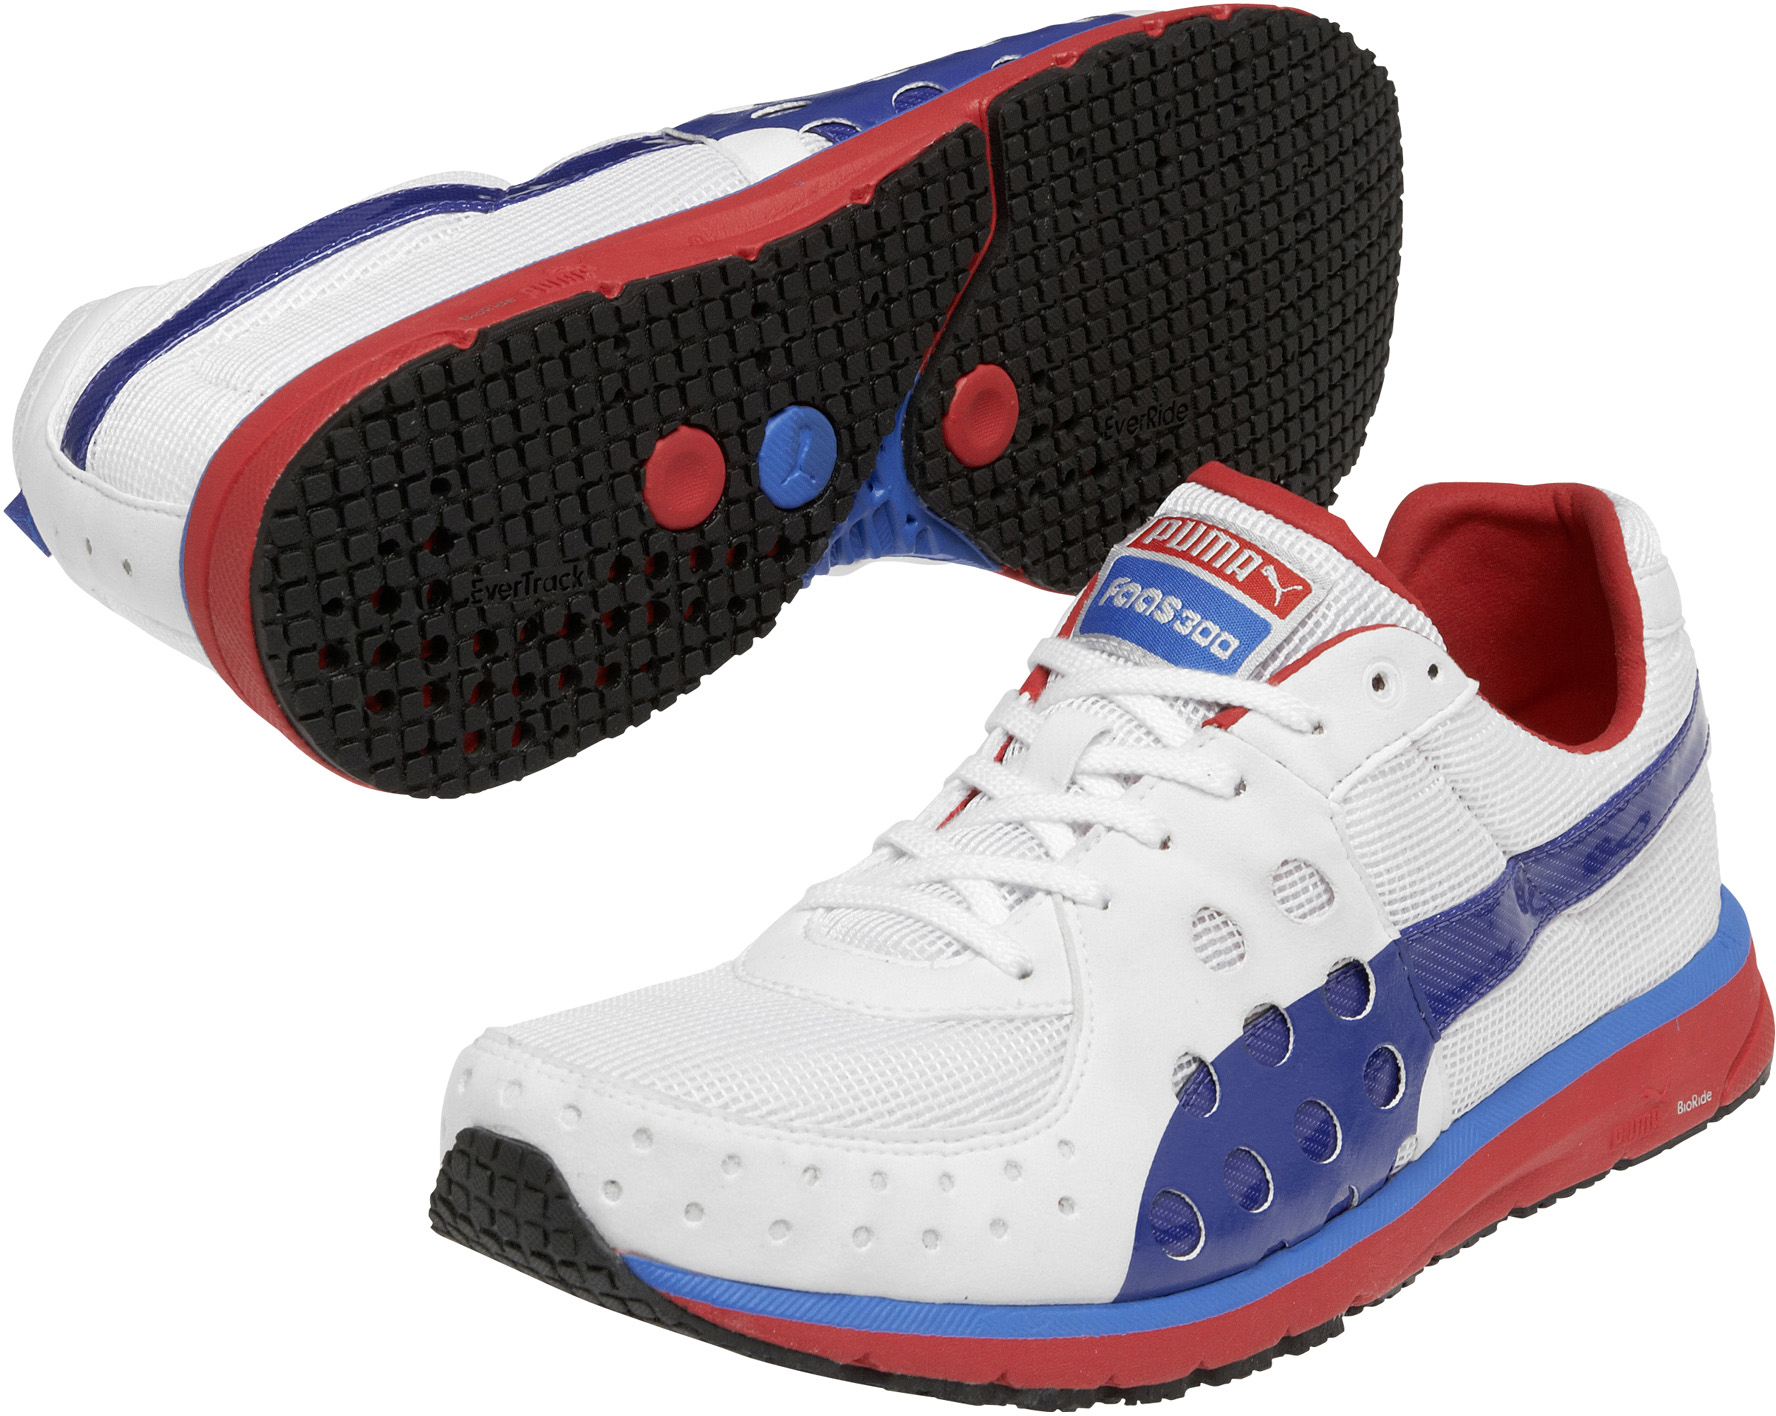 .au | Puma Faas 300 Shoes AW12 | Internal